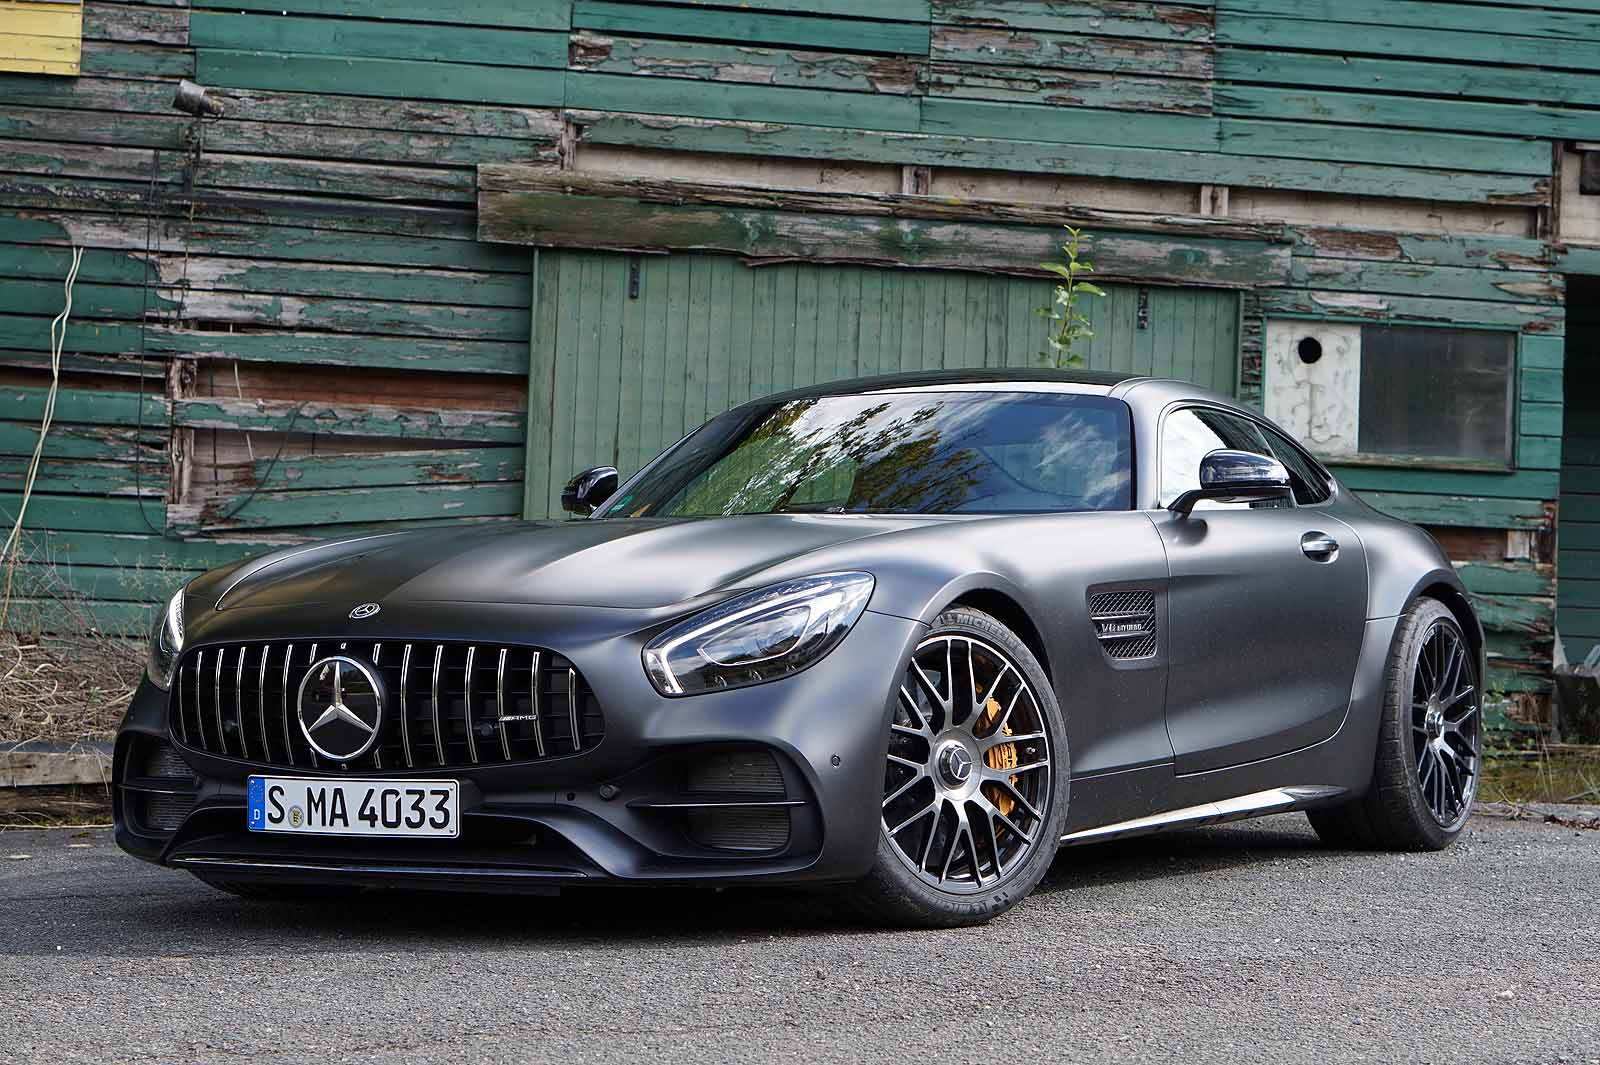 2018 mercedes amg gt review we drive the whole family and. Black Bedroom Furniture Sets. Home Design Ideas